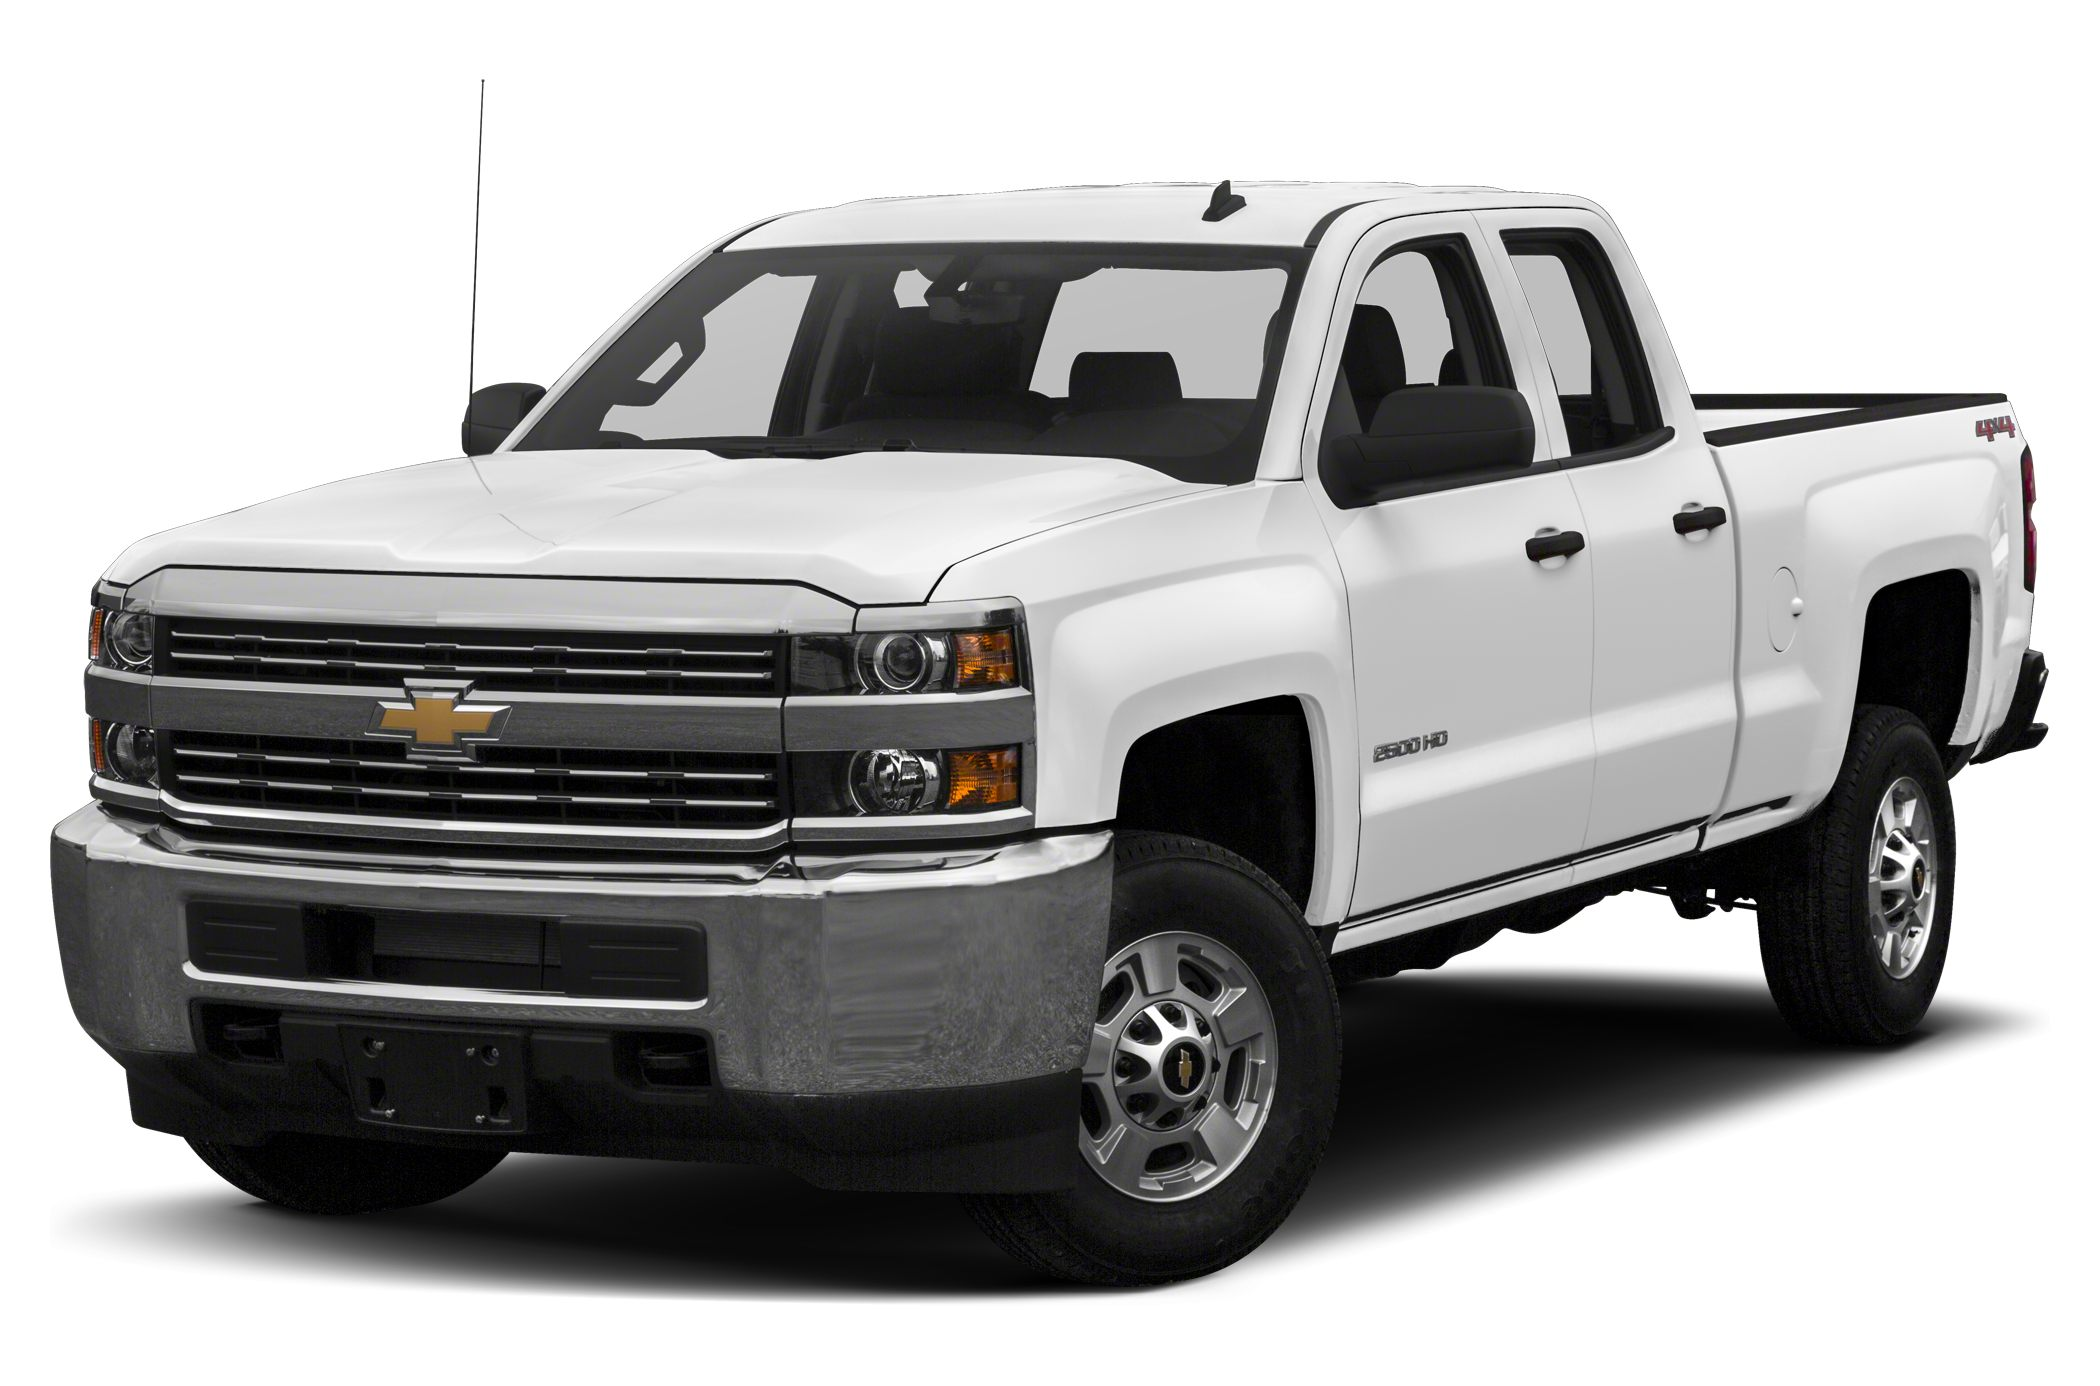 2015 Chevrolet Silverado 2500 LT Crew Cab Pickup for sale in Bullhead City for $44,655 with 0 miles